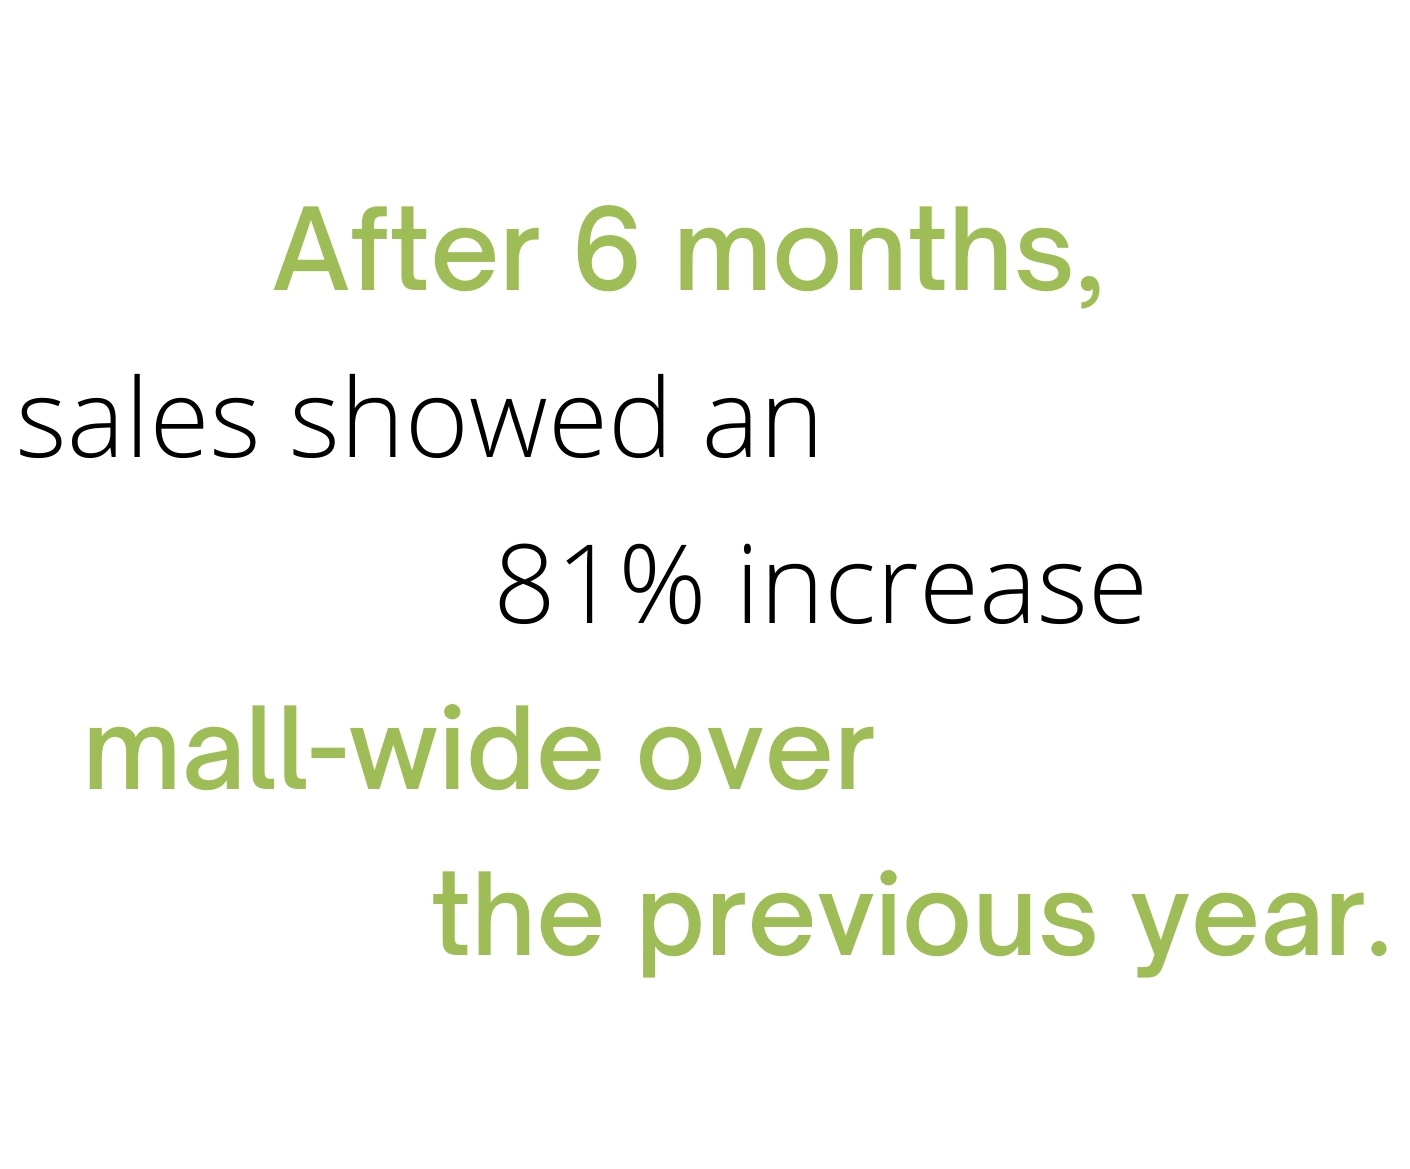 After 6 months, sales showed an 81% increase over the previous year.